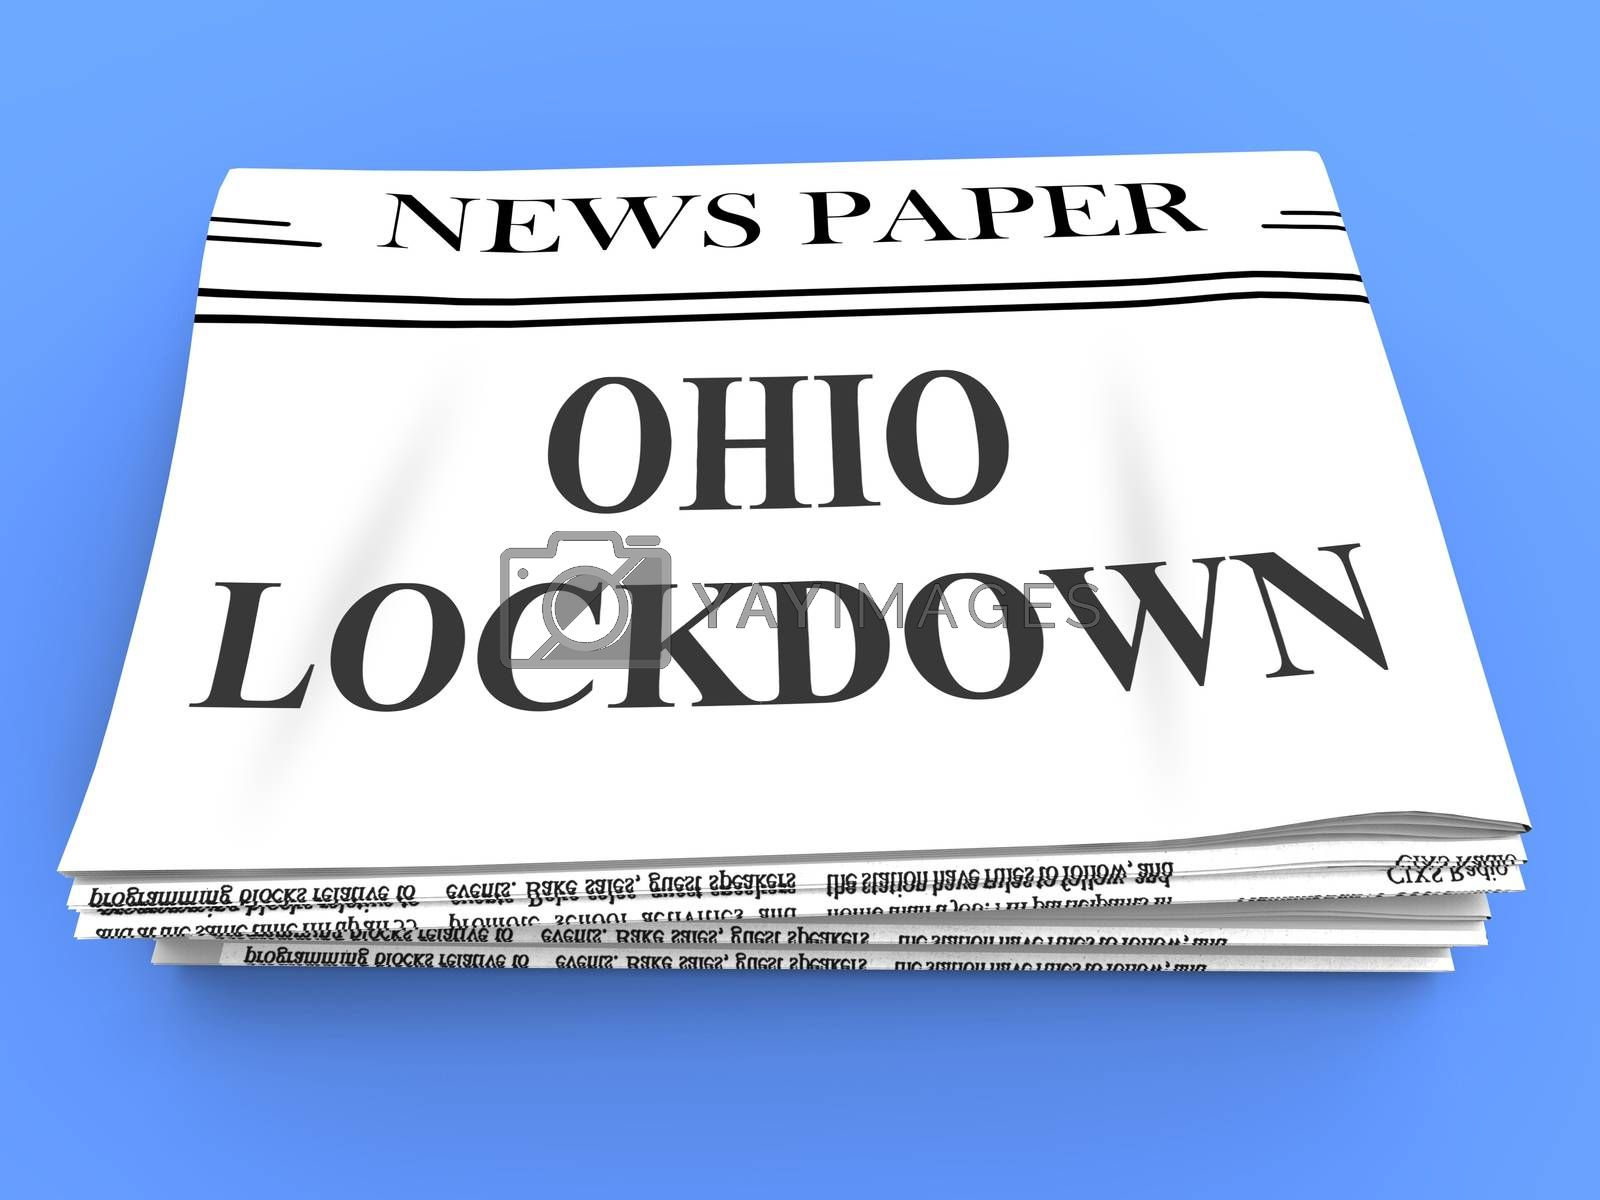 Ohio lockdown news means confinement from coronavirus covid-19 - by stuartmiles